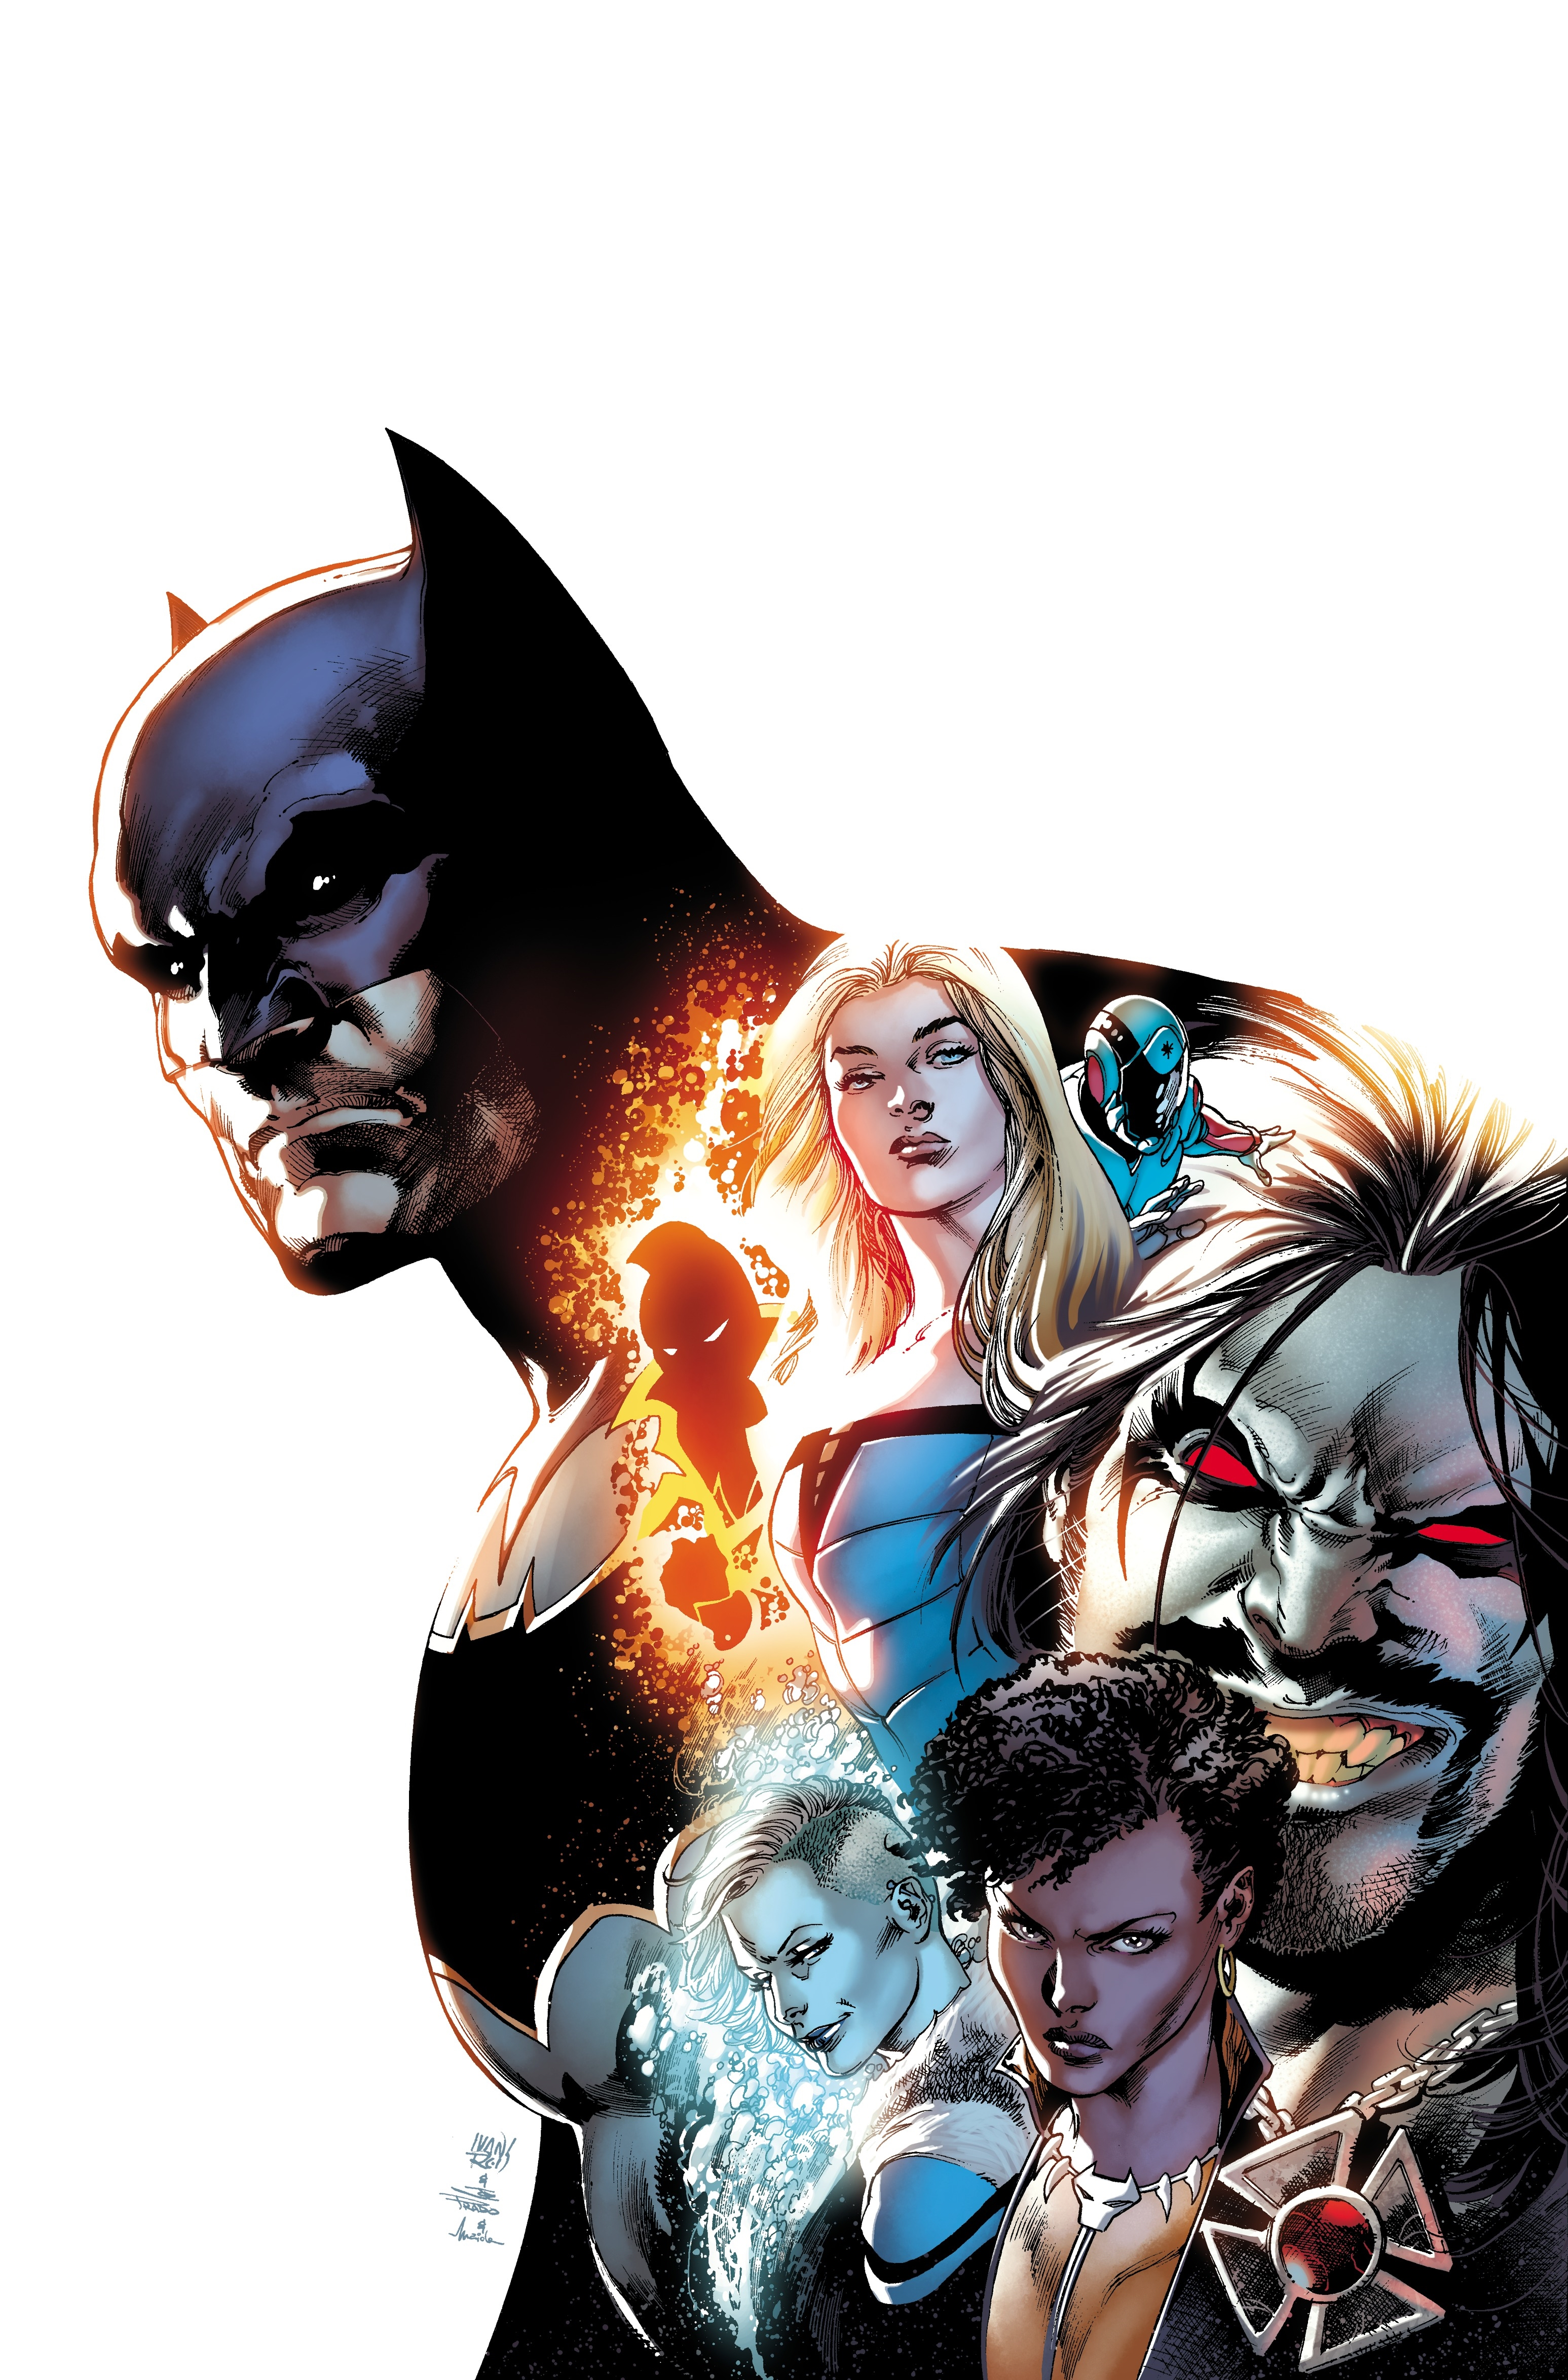 Justice League Of America The Rebirth Deluxe Edition Book 1 (Rebirth)Justice League of America - Rebirth by Steve Orlando, ISBN: 9781401276928